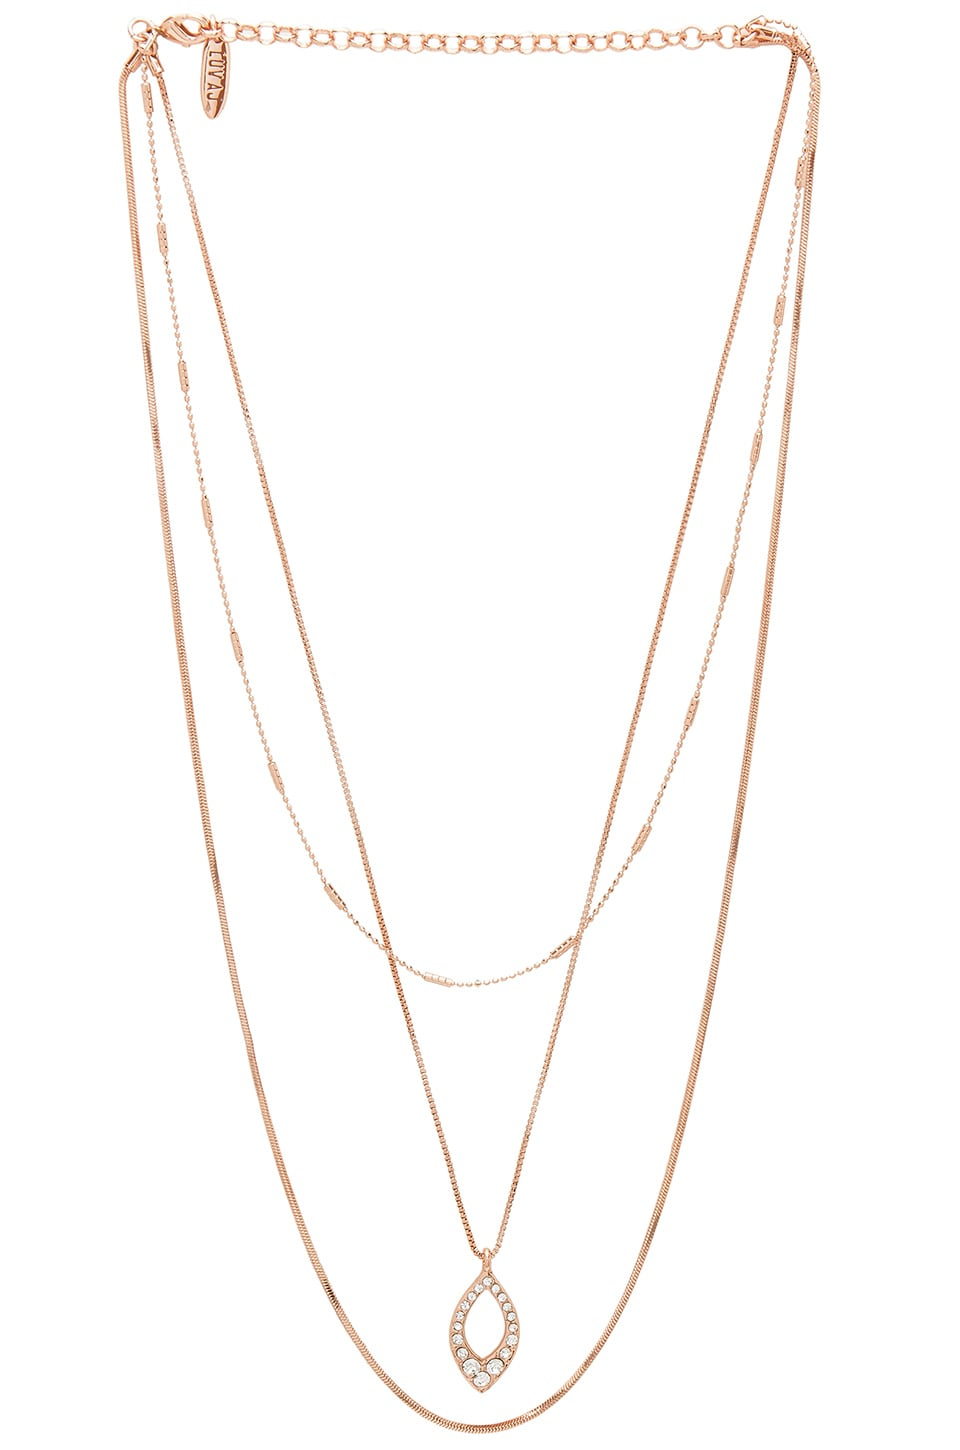 The Pave Marquise Charm Necklace in Metallic Copper Luv AJ kM6KN